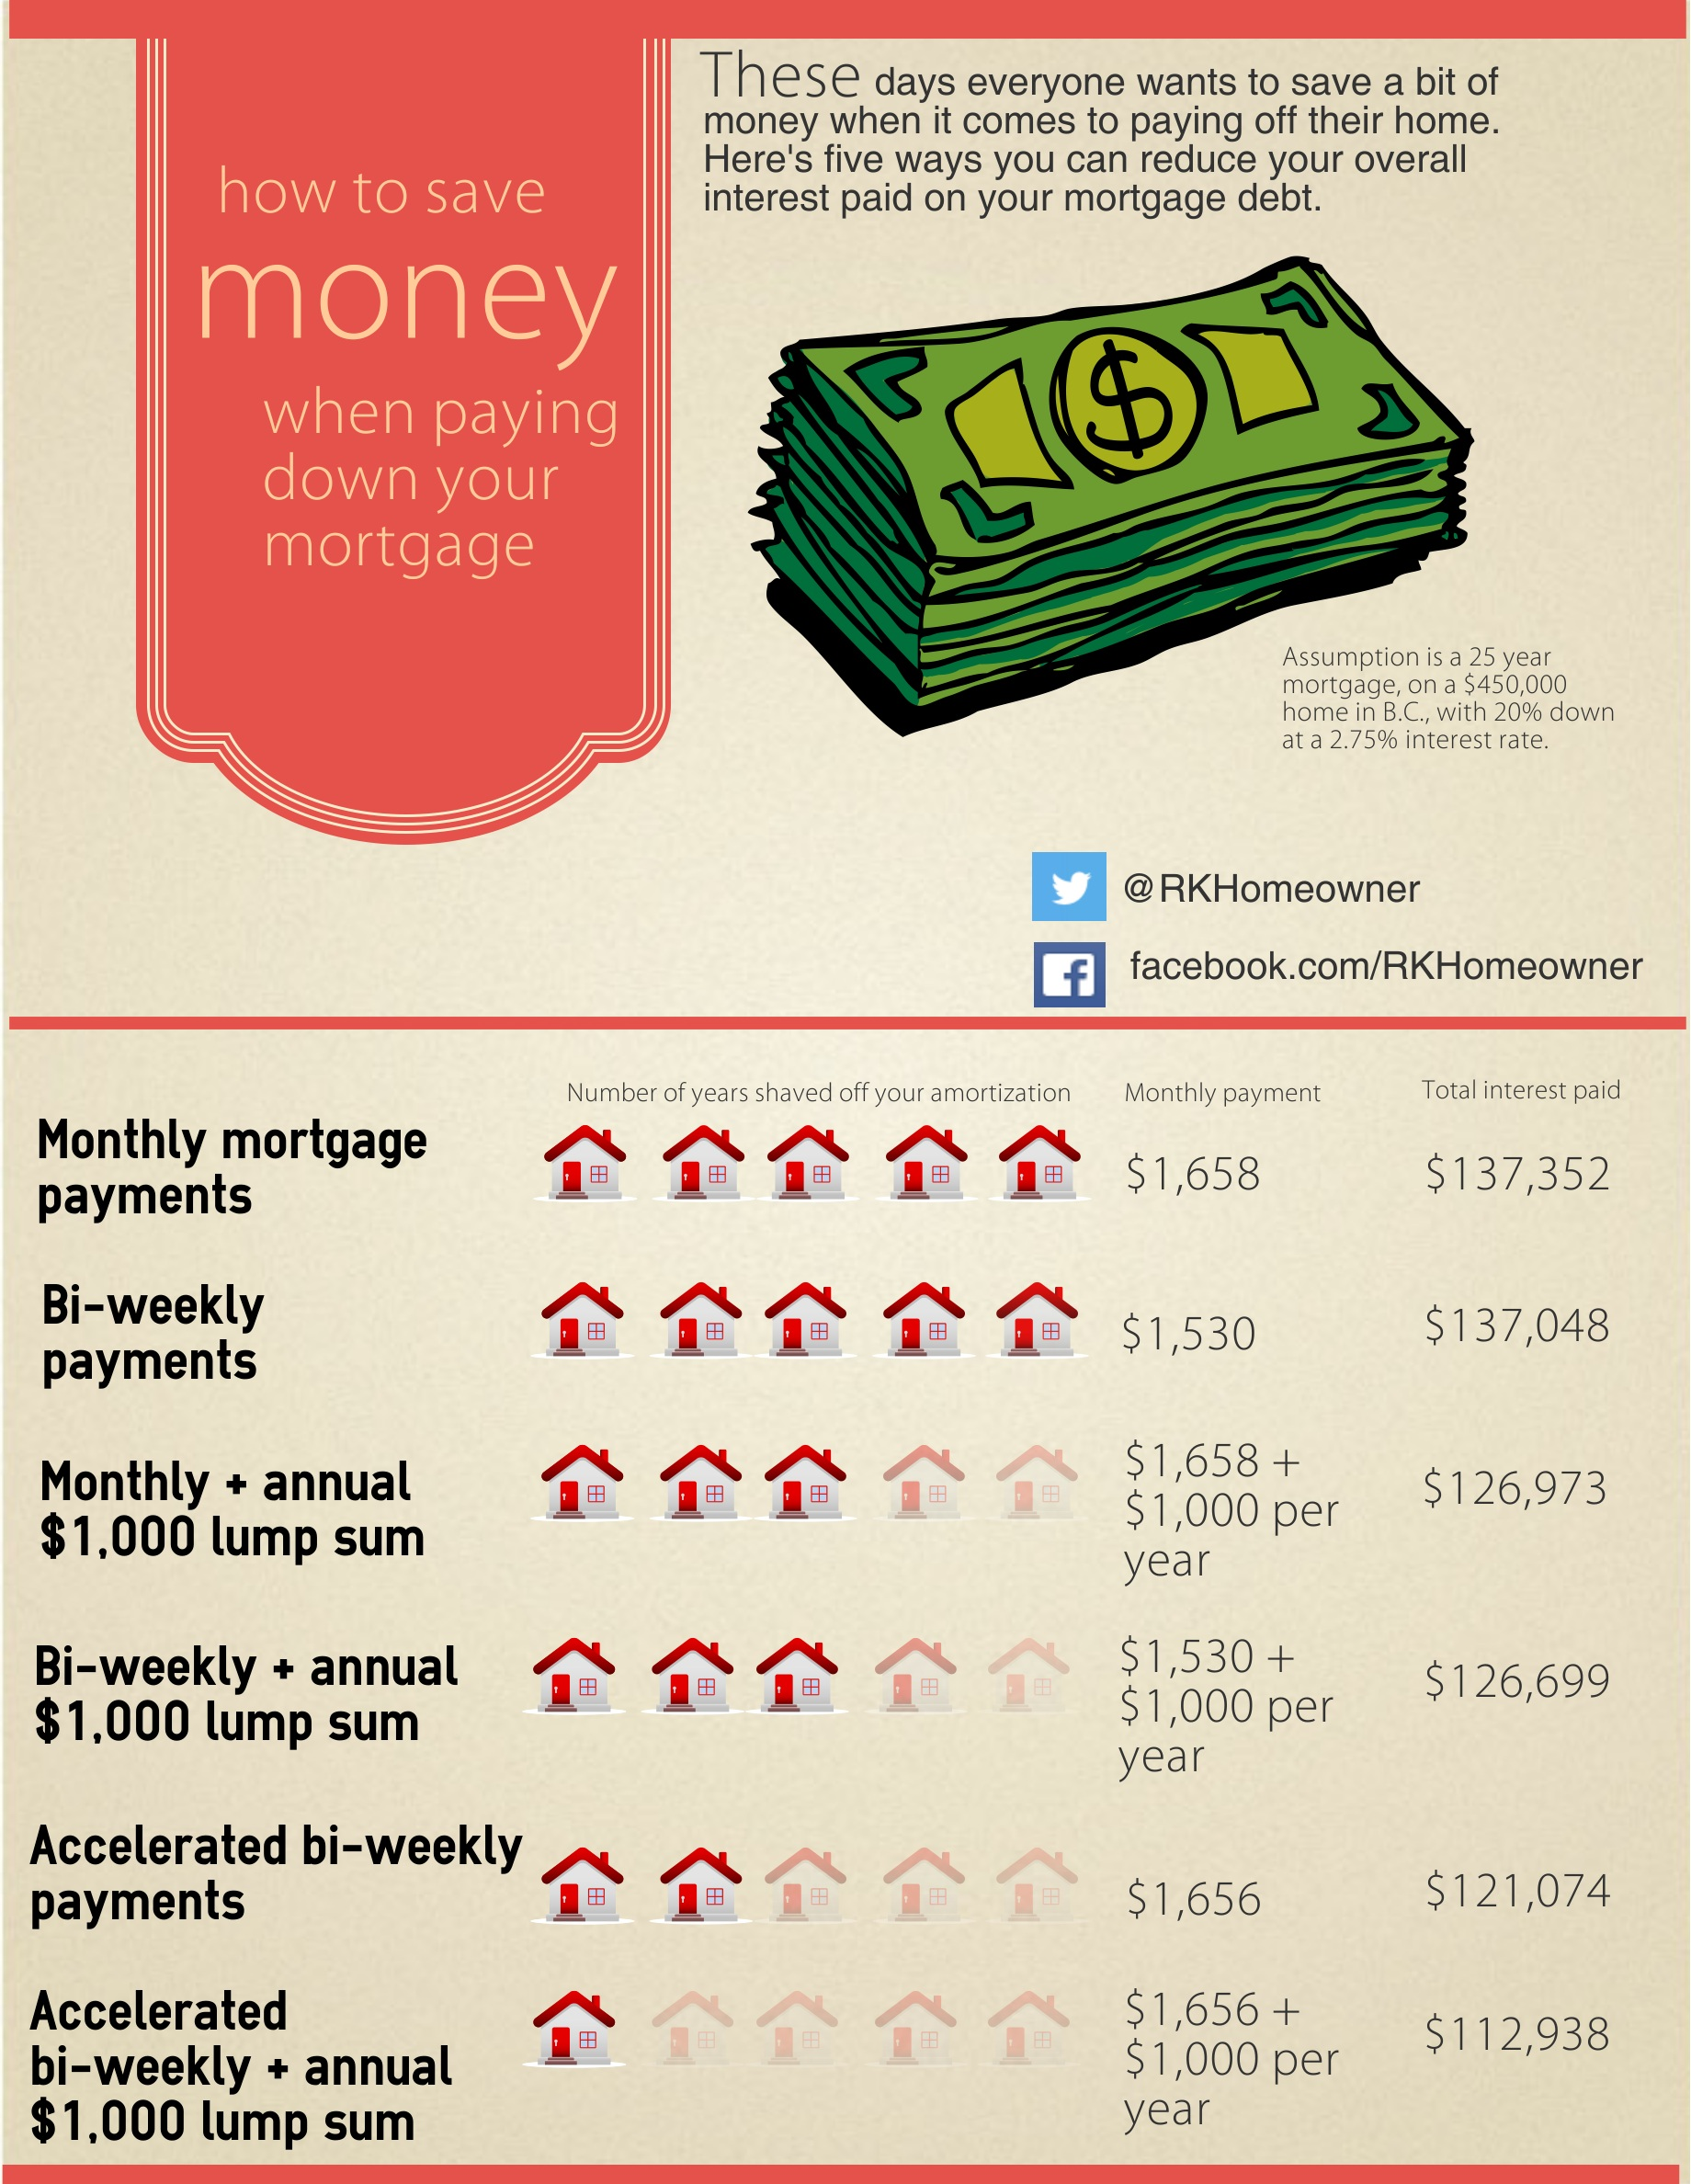 Simple ways to save money on your mortgage